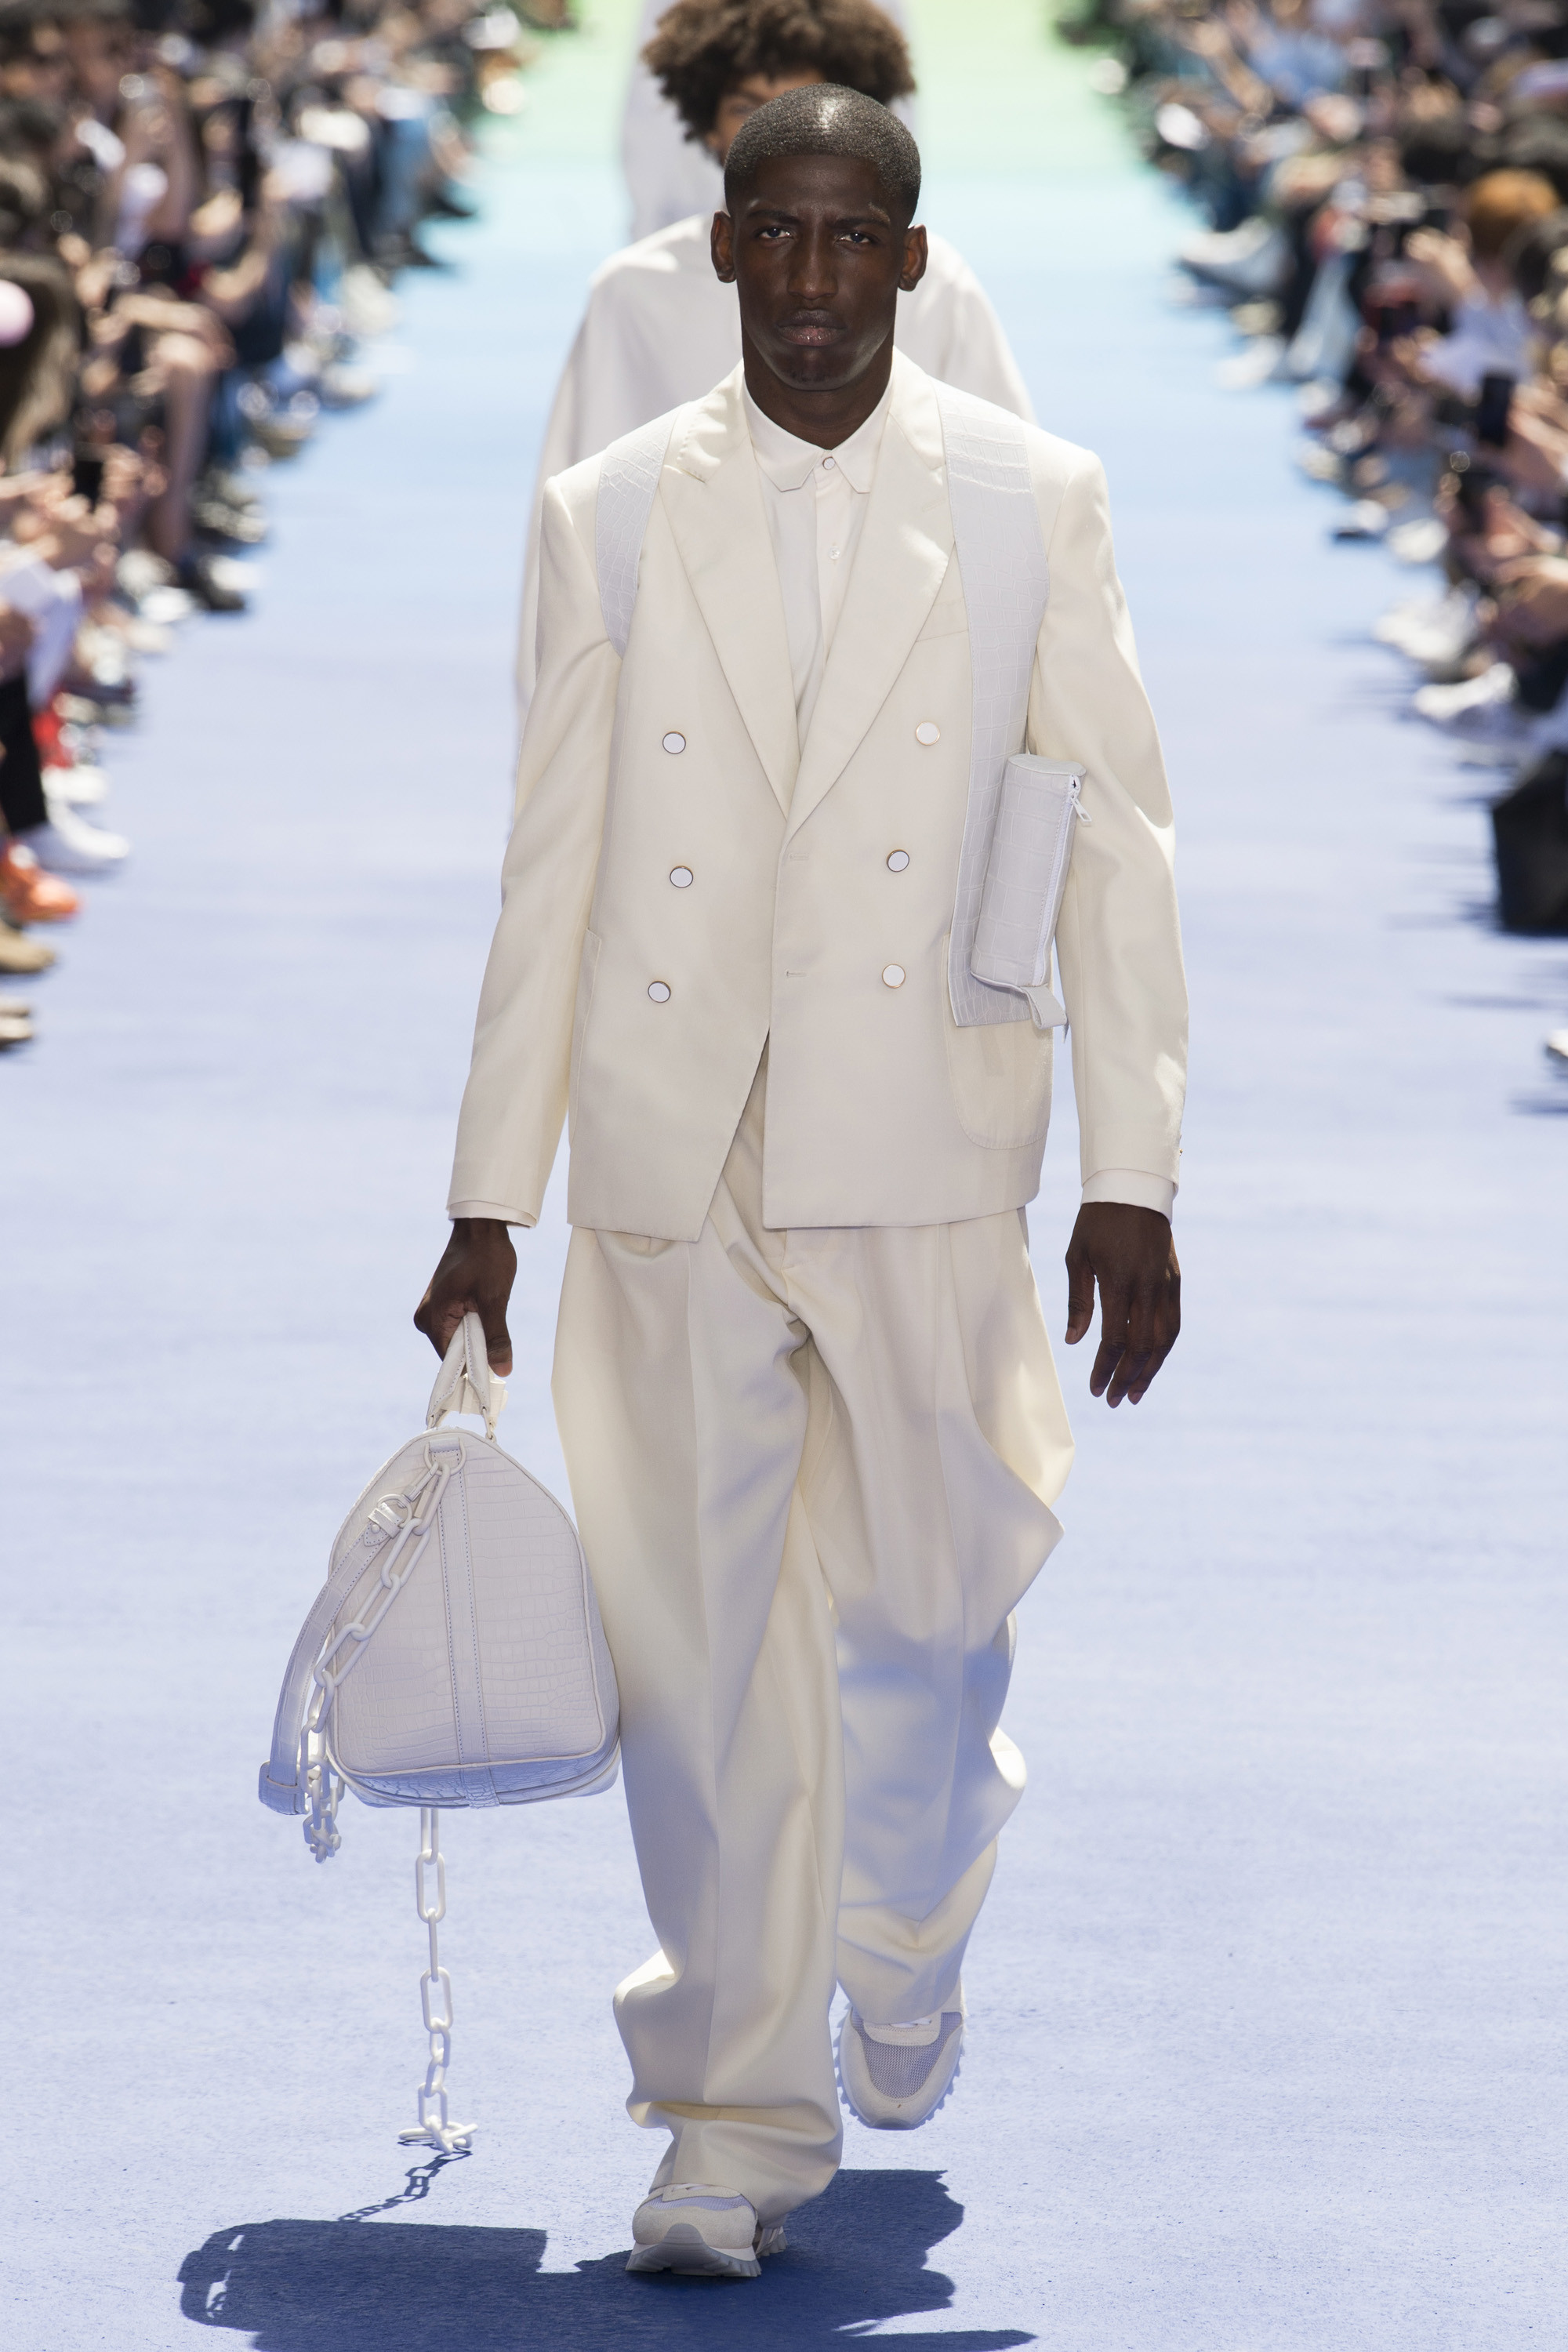 Louis Vuitton Menswear SS 2019